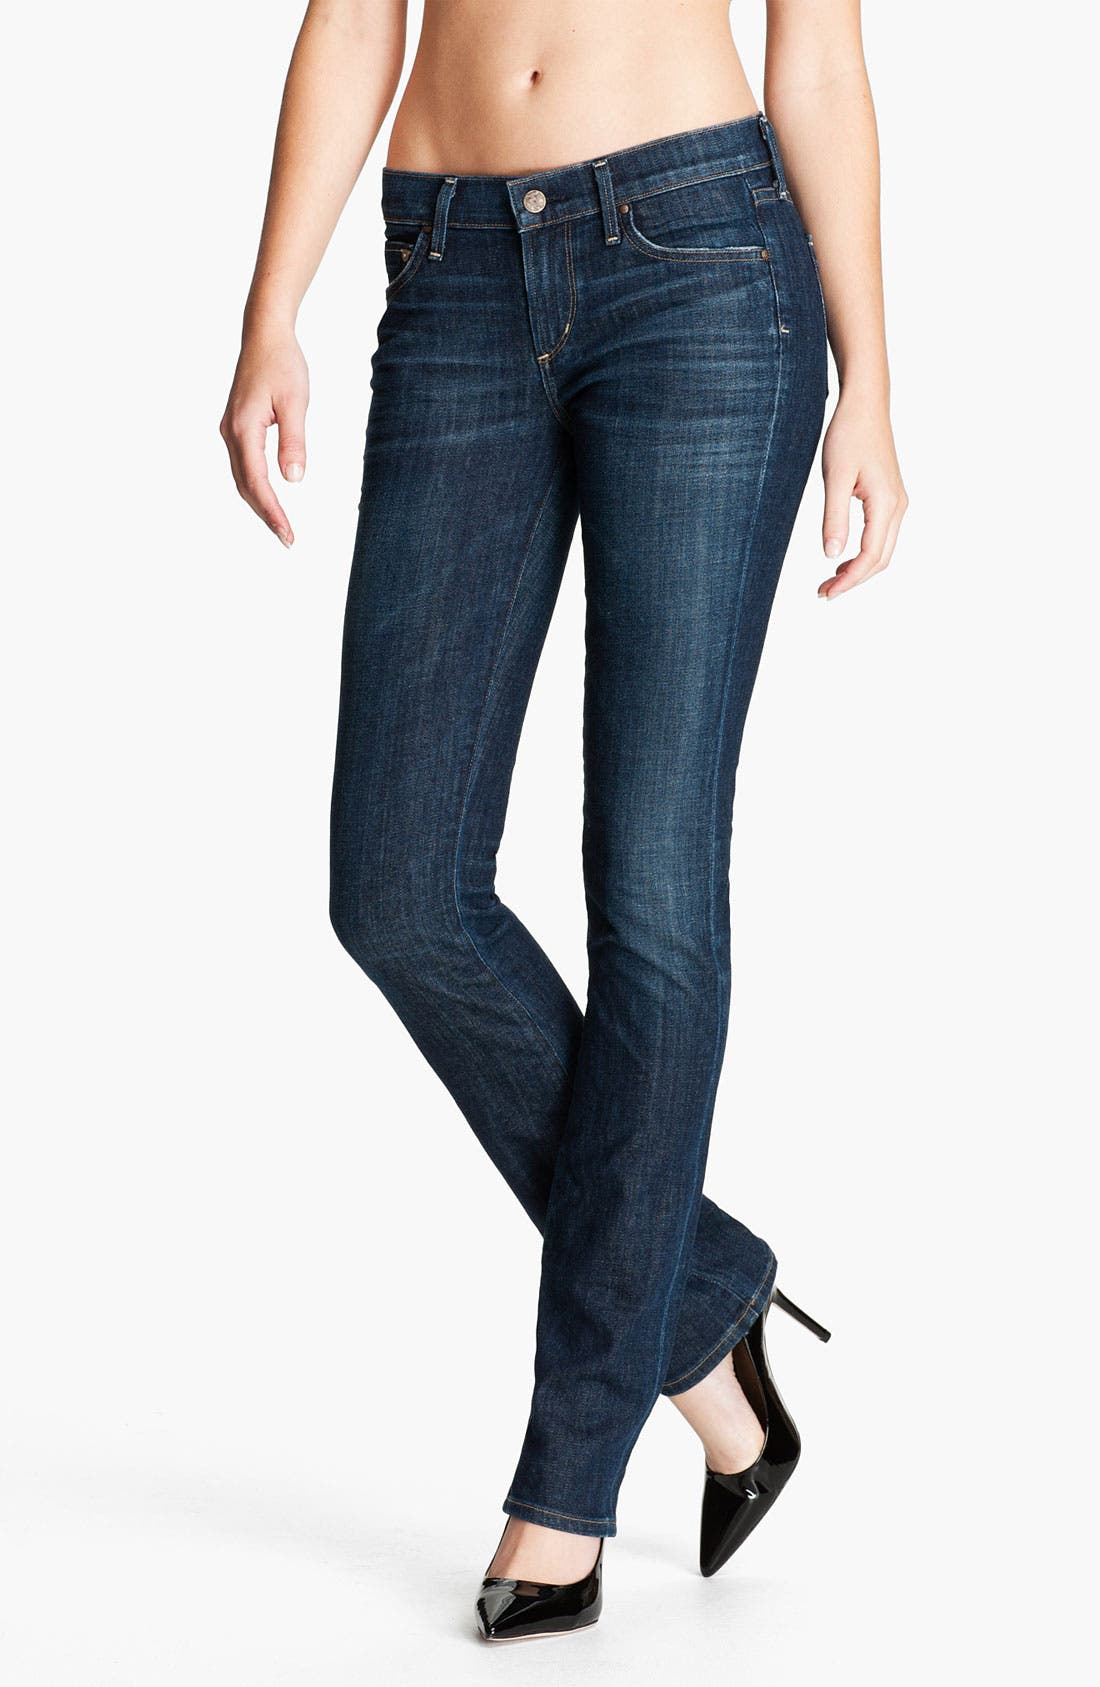 Main Image - Citizens of Humanity 'Ava' Straight Leg Stretch Jeans (Galaxy)